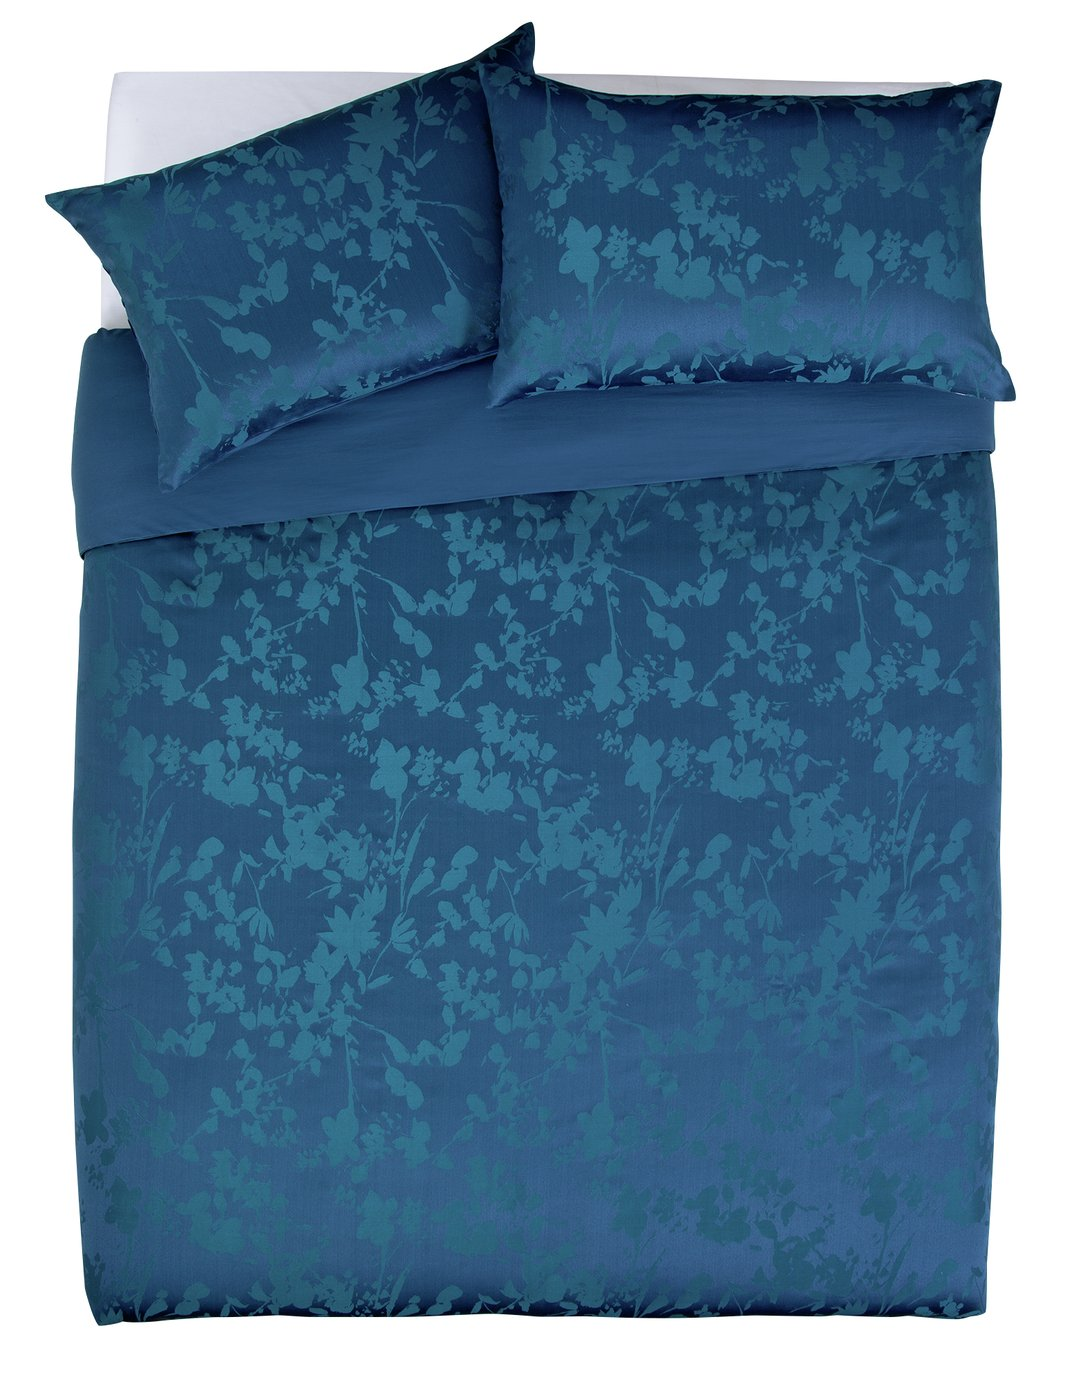 Argos Home Opulence Jacquard Bedding Set - Double